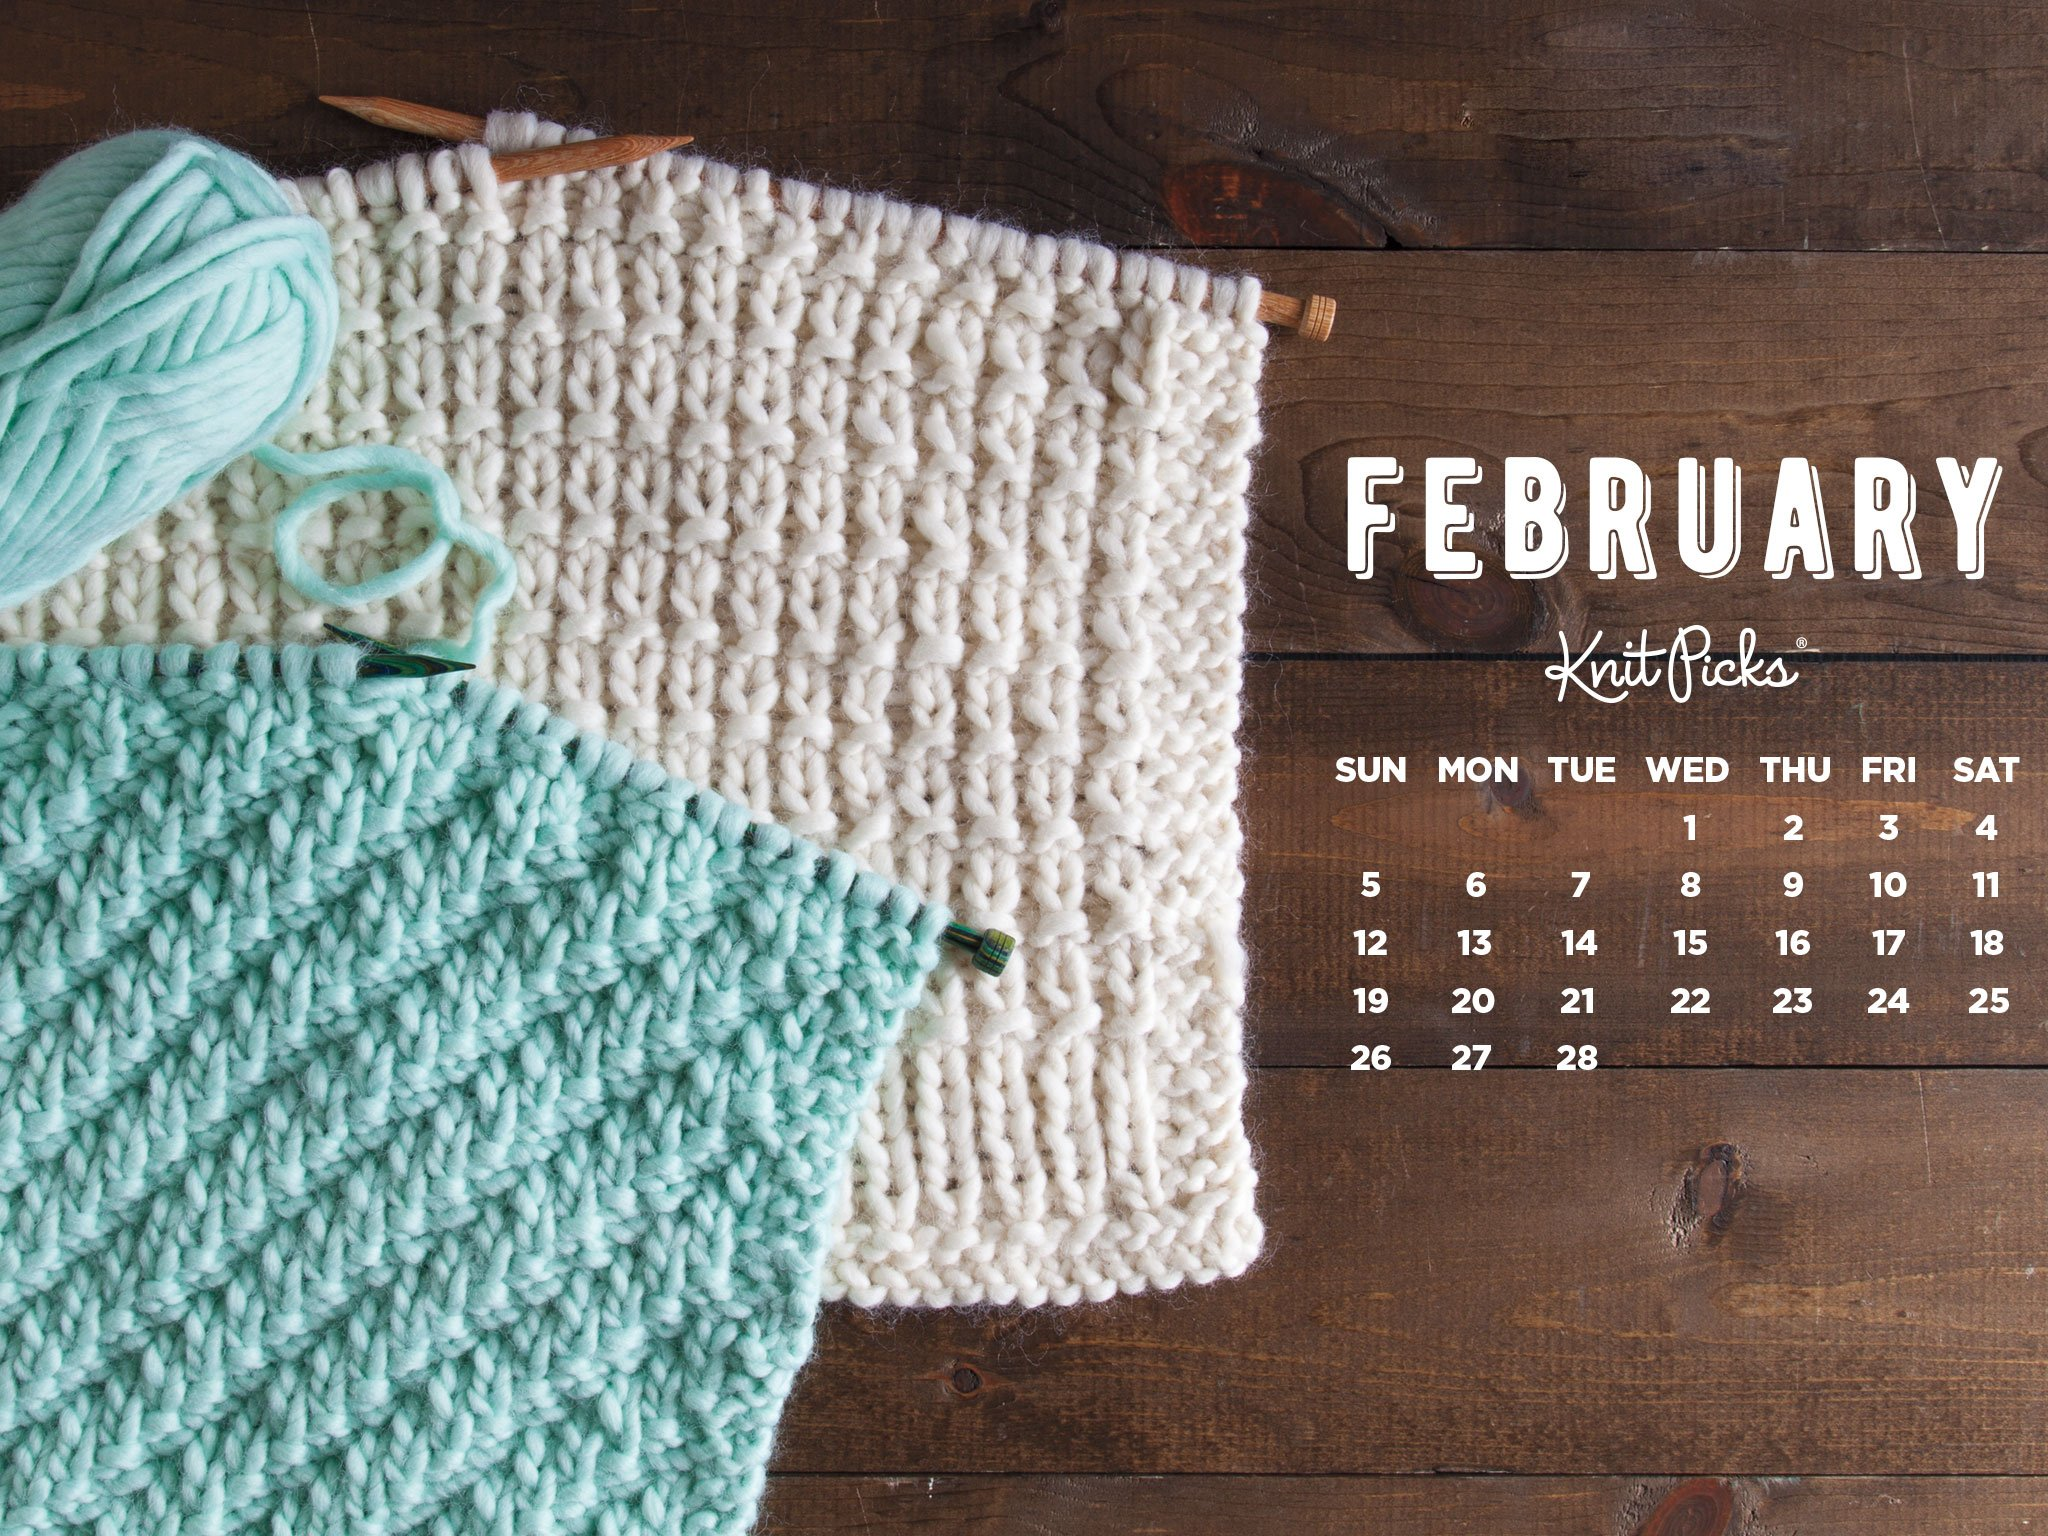 Downloadable February Calendar from Knit Picks 2048x1536